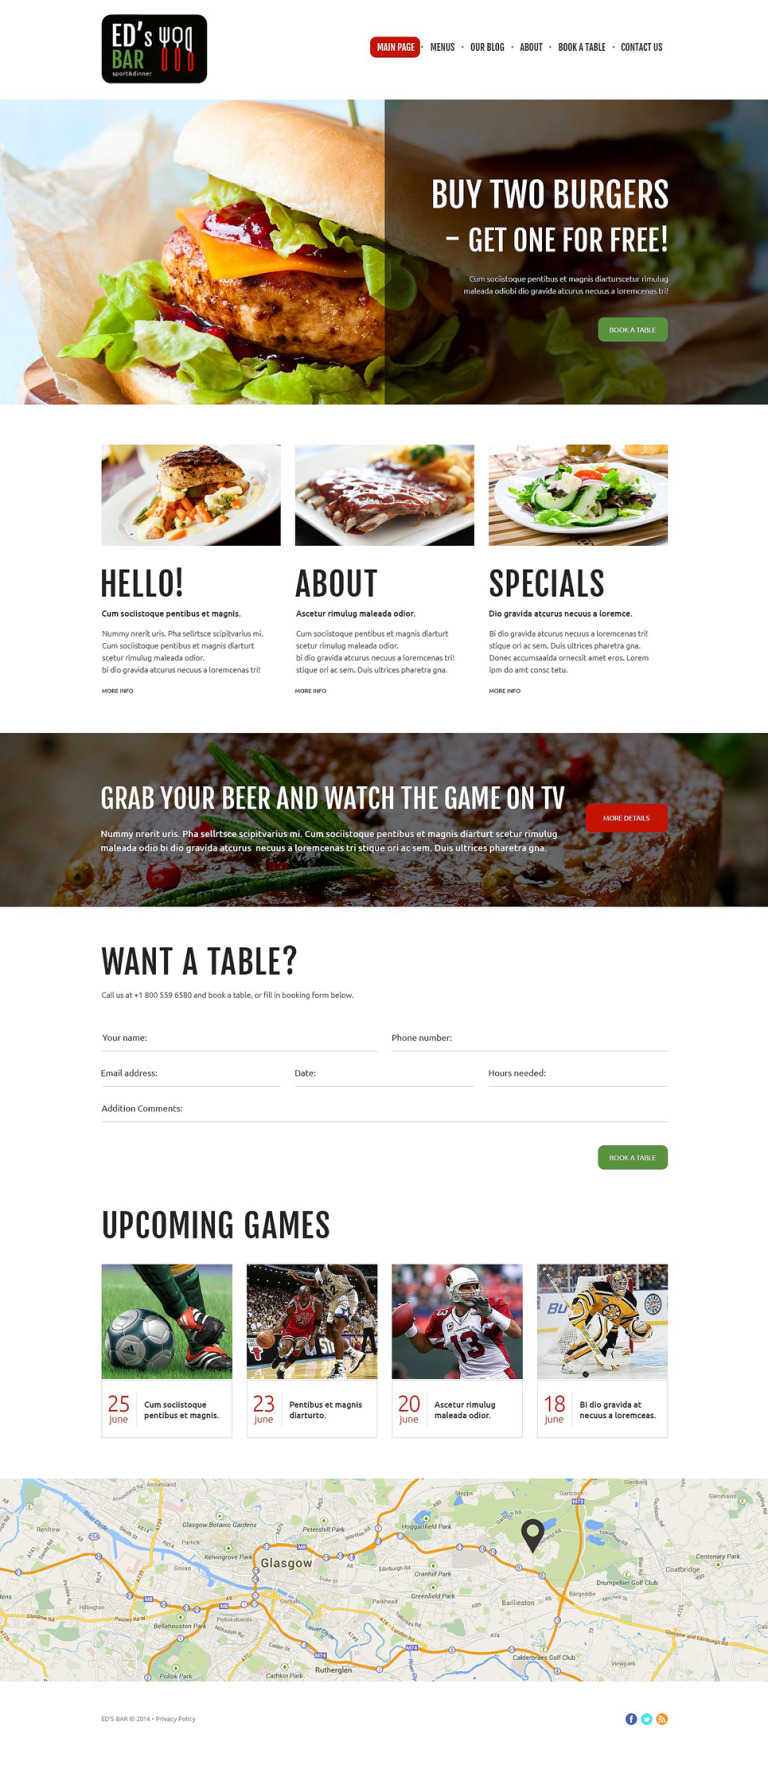 Sports Bar Joomla Template New Screenshots BIG